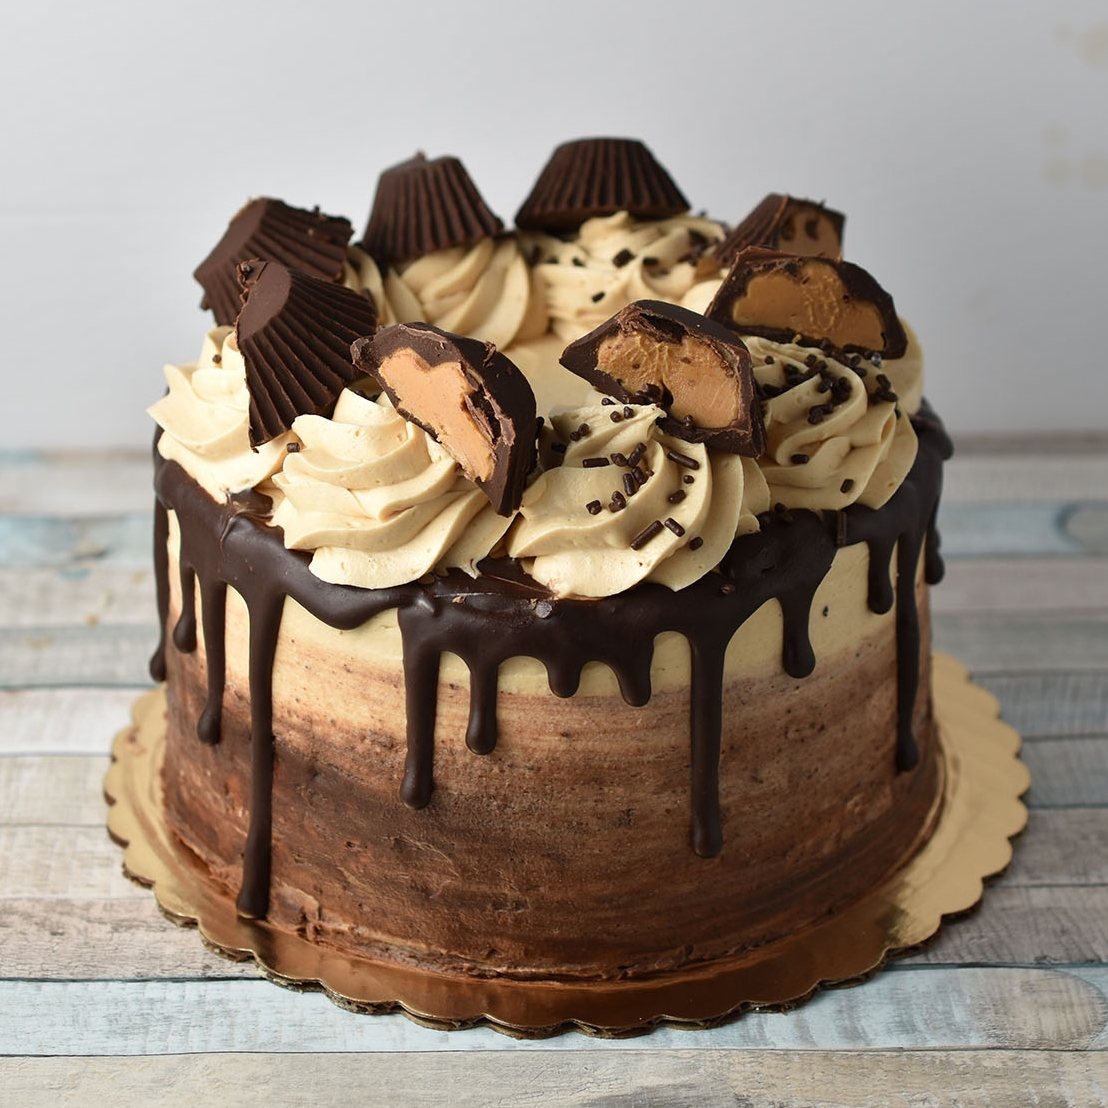 Peanut Butter cuP - The marriage of the two best flavors known to man. Chocolate and peanut butter bring joy to our tastebuds. Chocolate cake, fluffy peanut butter frosting, and ganache.Gluten Free option available